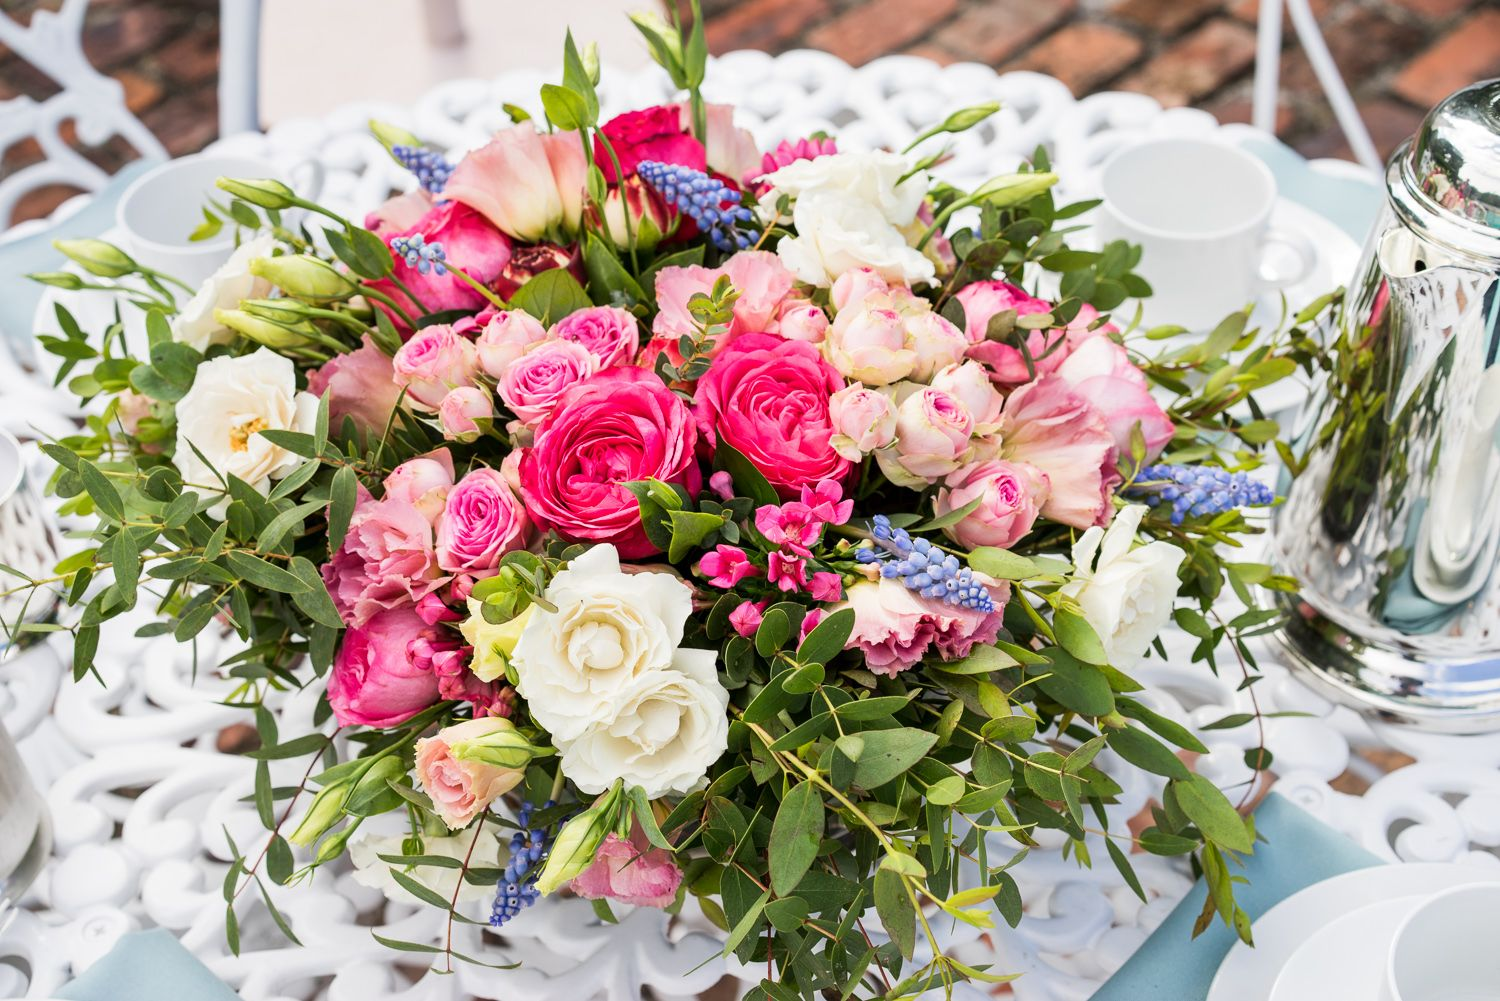 10 mothers day flower arranging ideas best mothers day floral arrangements - Floral Design Ideas